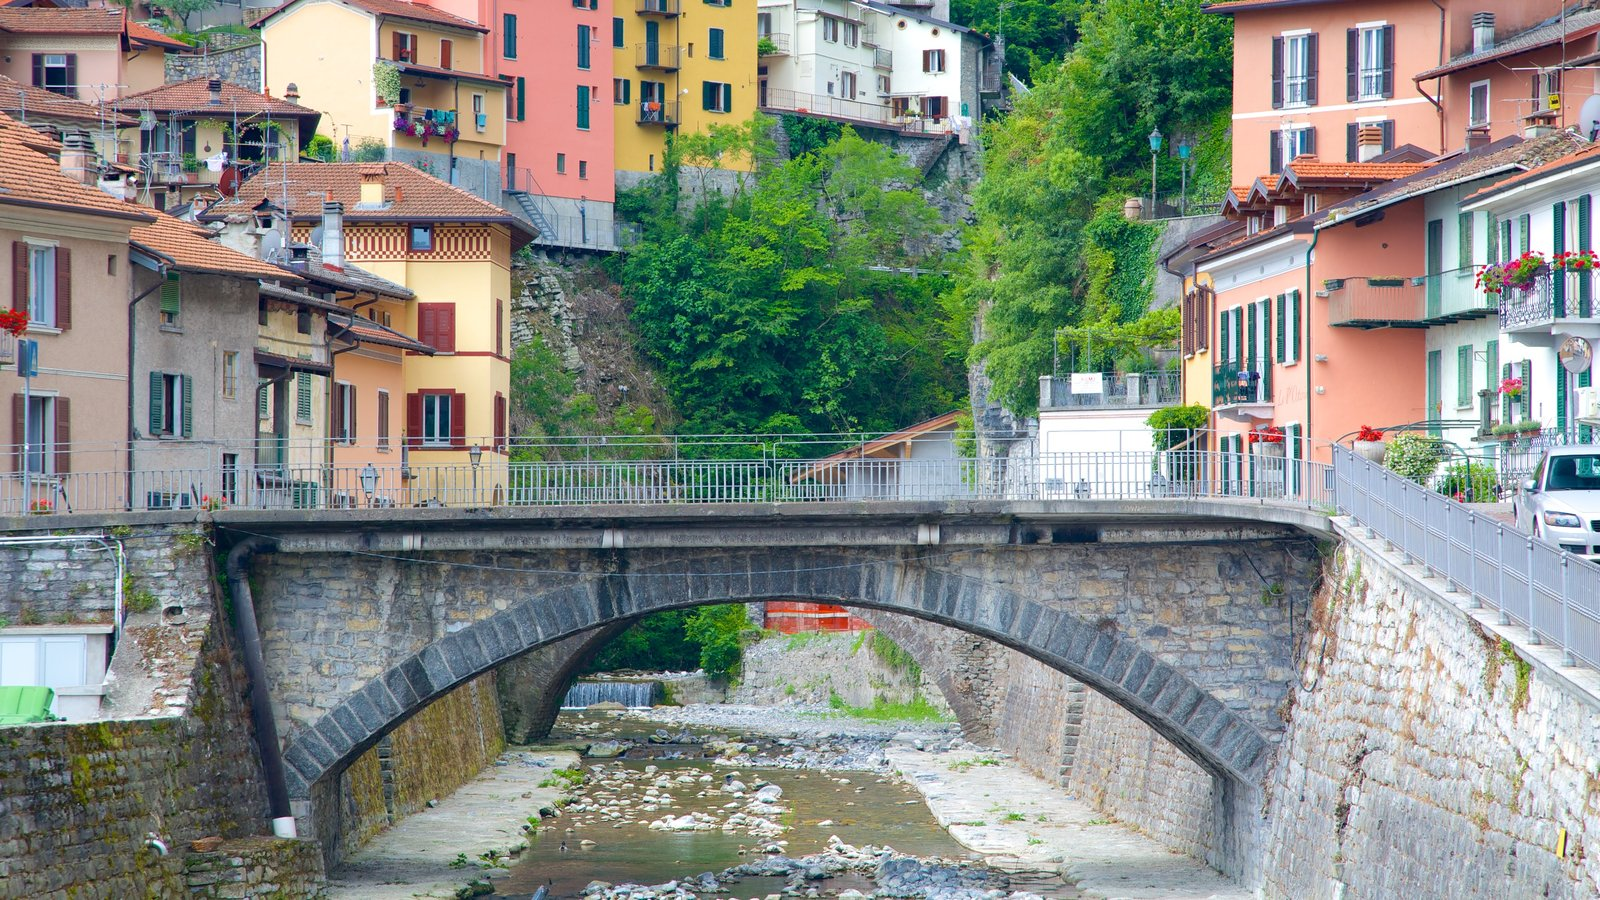 Argegno showing a river or creek, a small town or village and a bridge